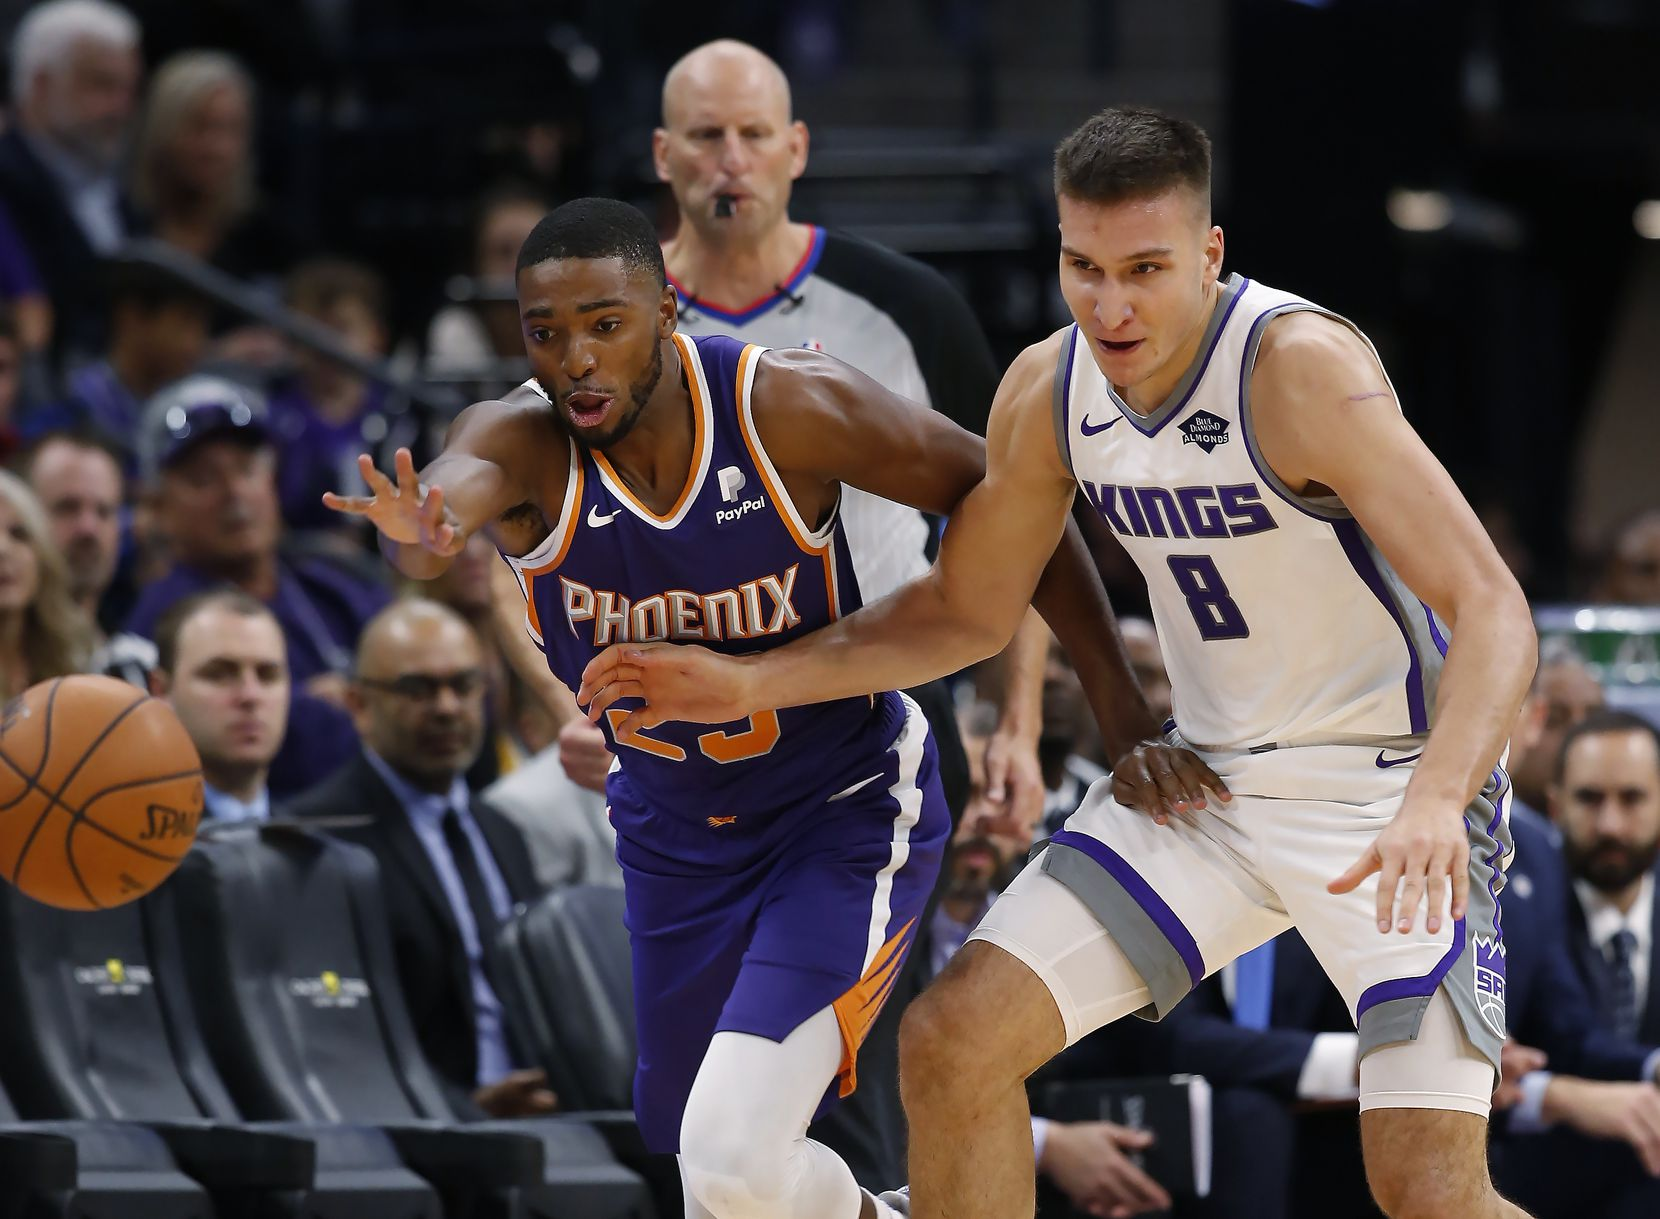 Phoenix Suns forward Mikal Bridges, left, and Sacramento Kings guard Bogdan Bogdanovic scramble for the ball during the second half of an NBA preseason basketball game in Sacramento, Calif., Thursday, Oct. 10, 2019. (AP Photo/Rich Pedroncelli)